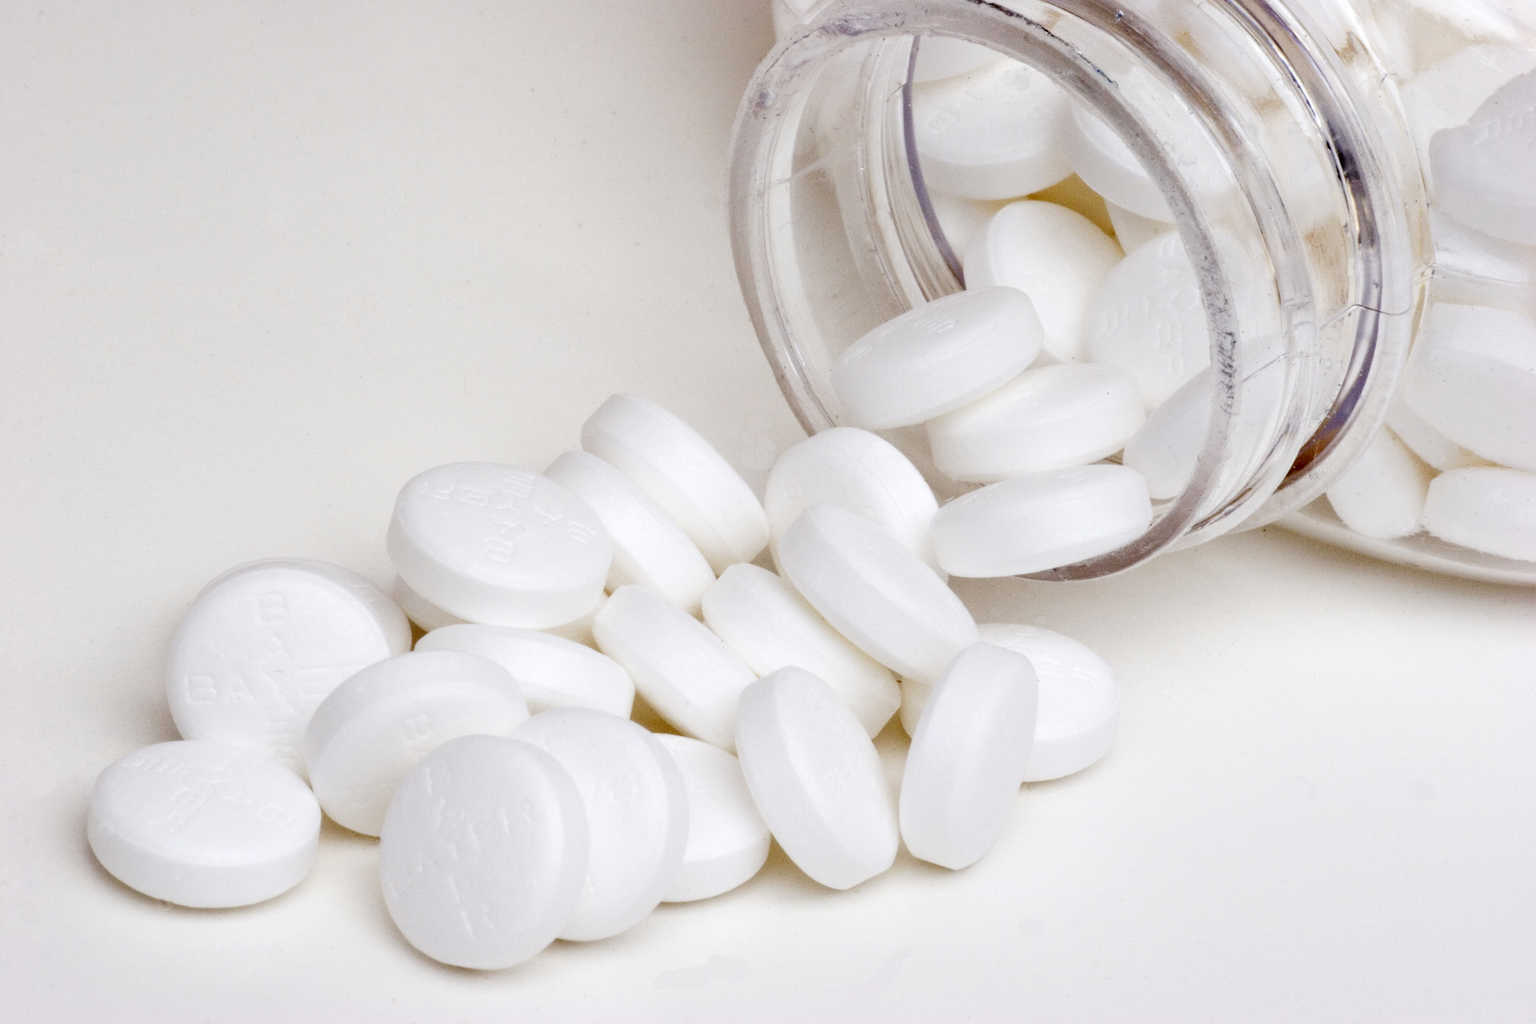 Aspirin beat chemotherapy in cancer treatment